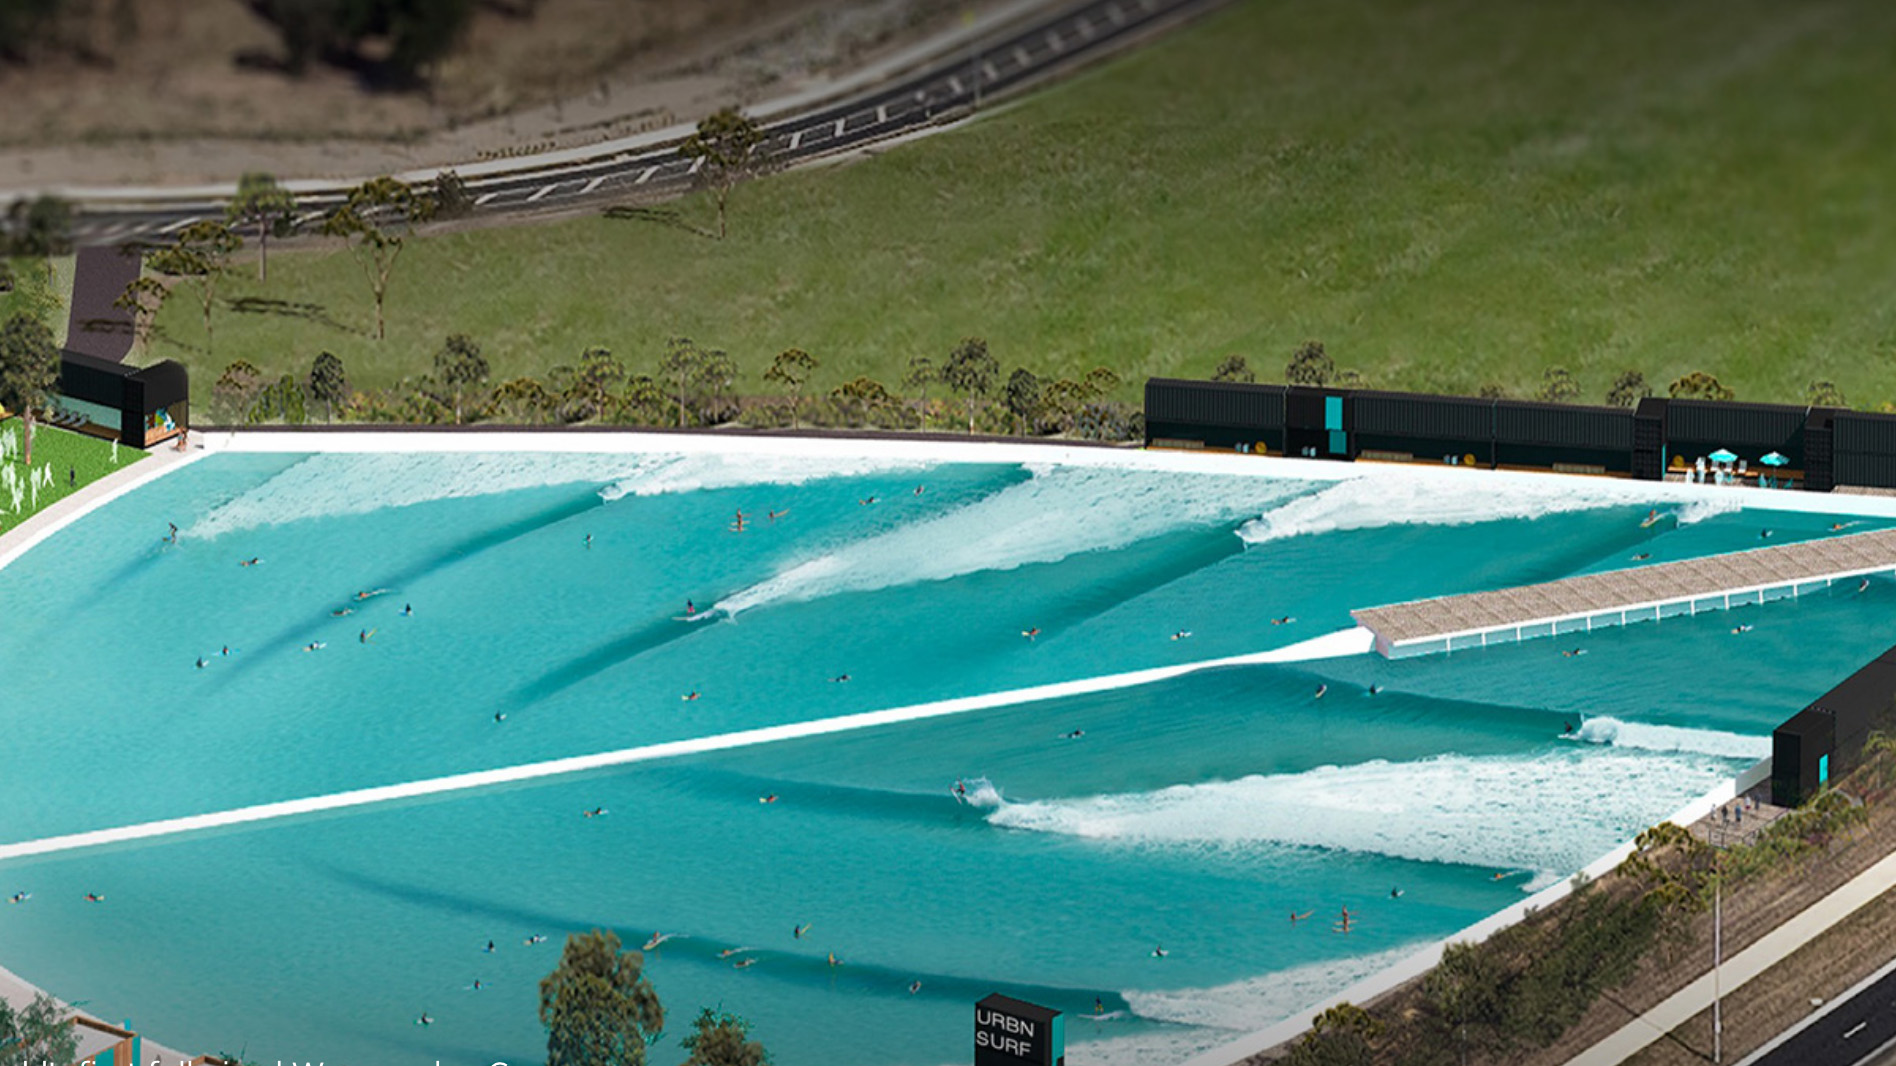 Melbourne Cove wave pool